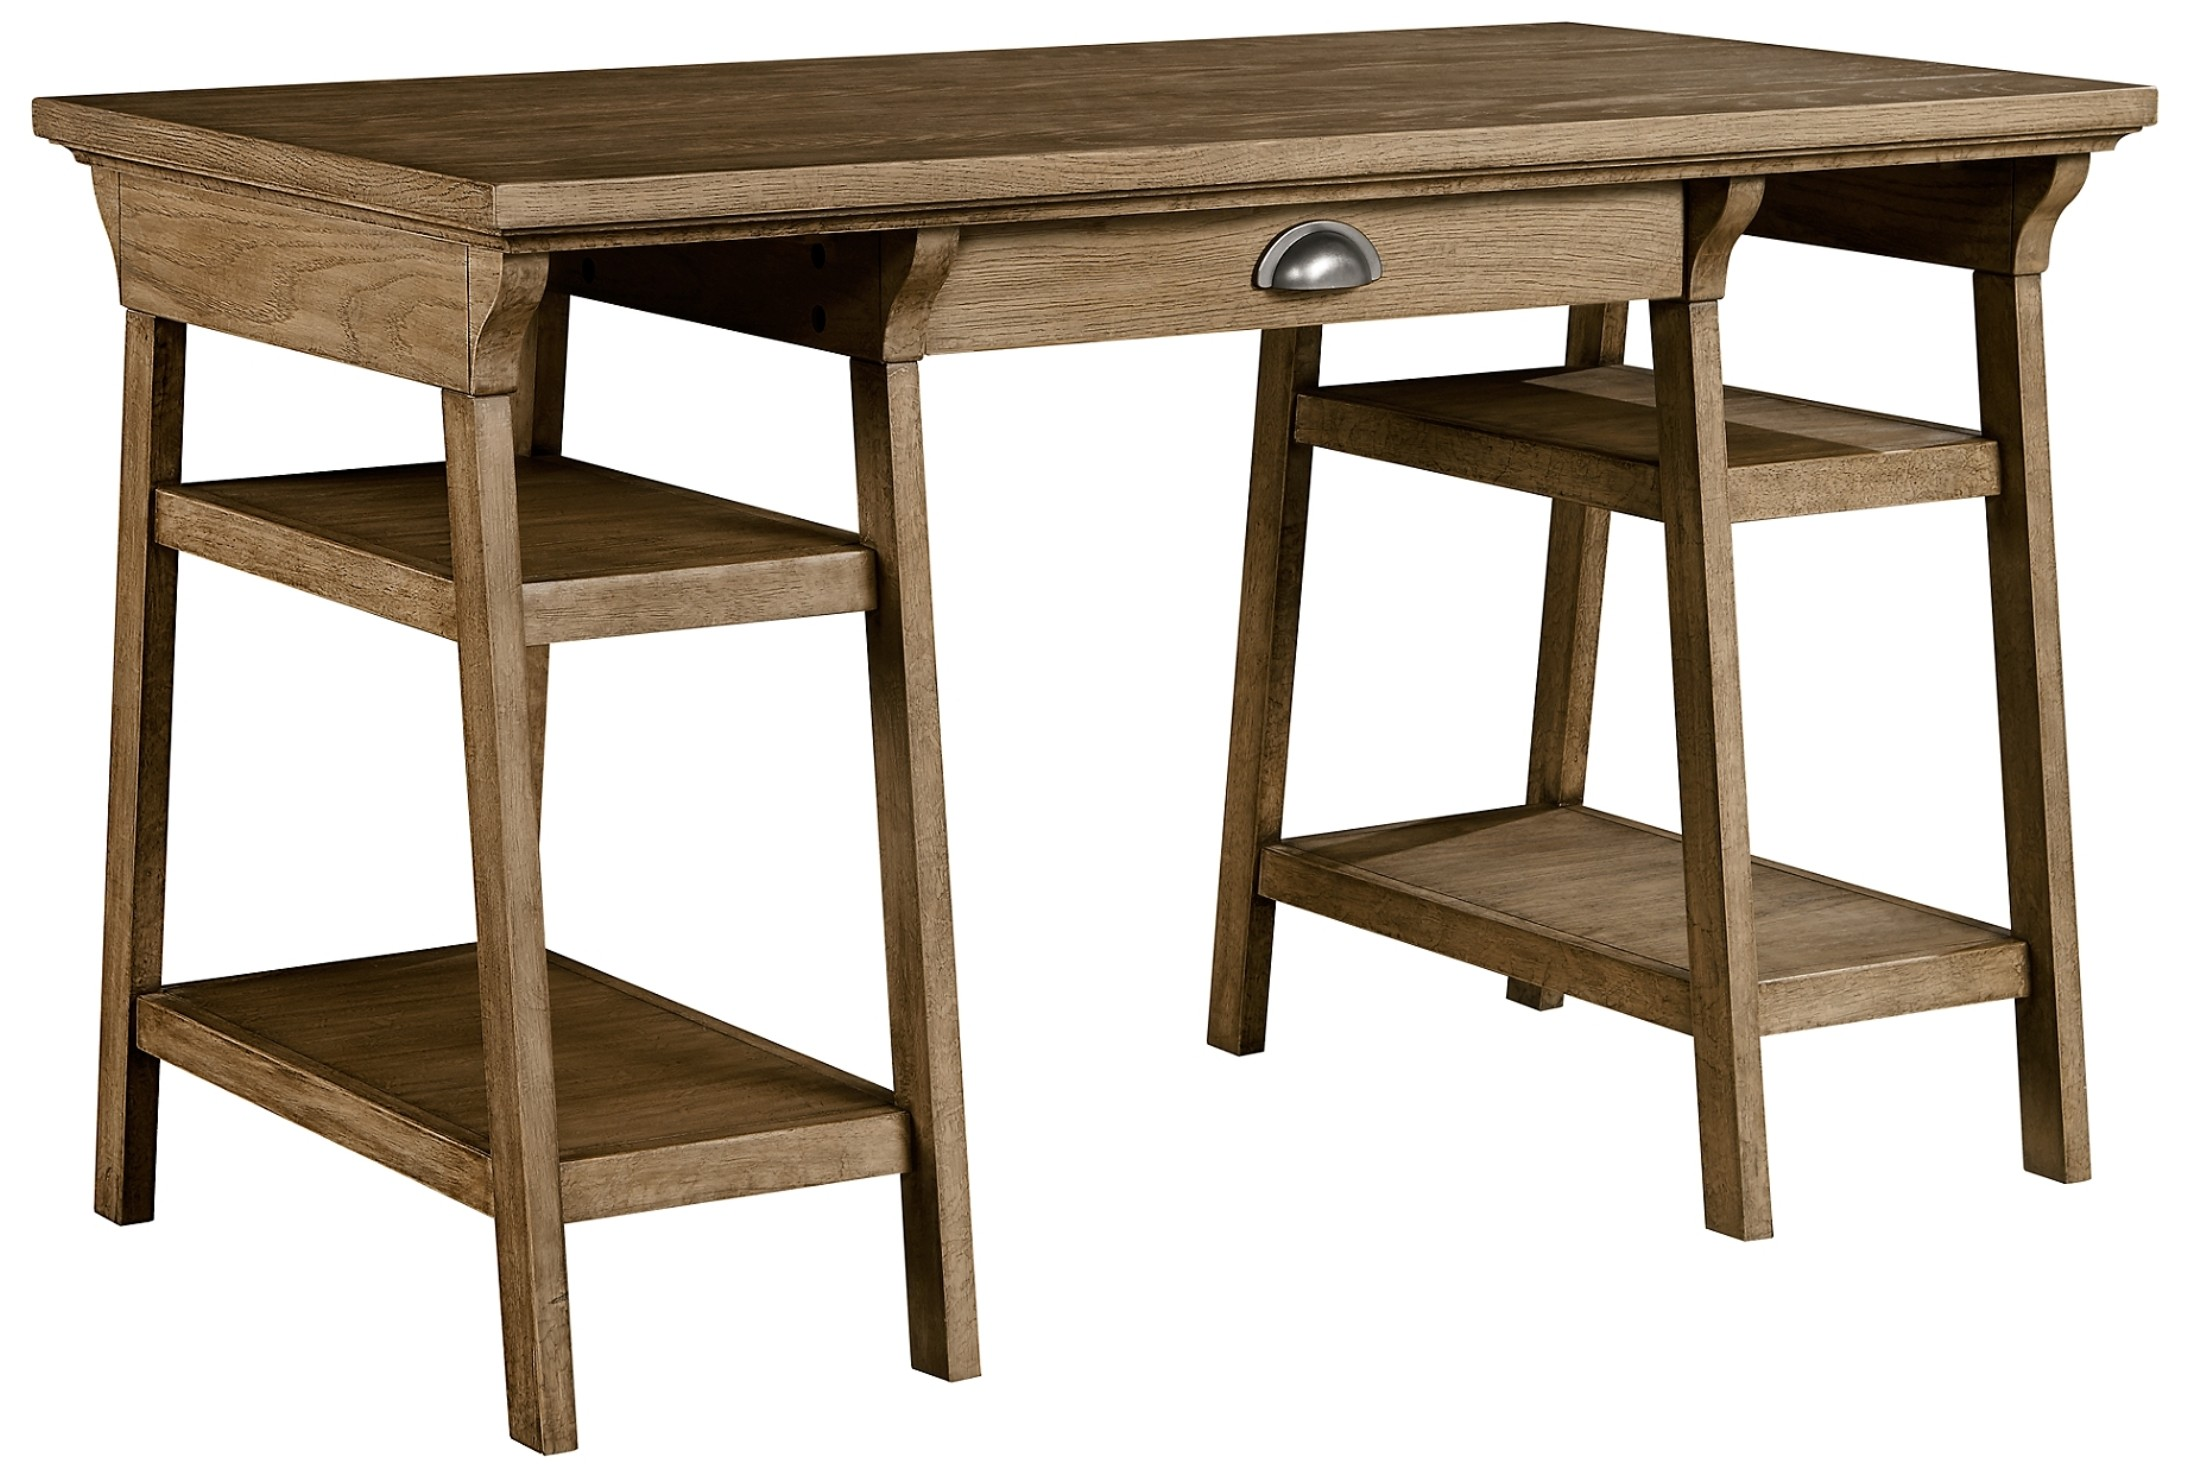 Driftwood Park Sunflower Seed Desk from Stone and Leigh